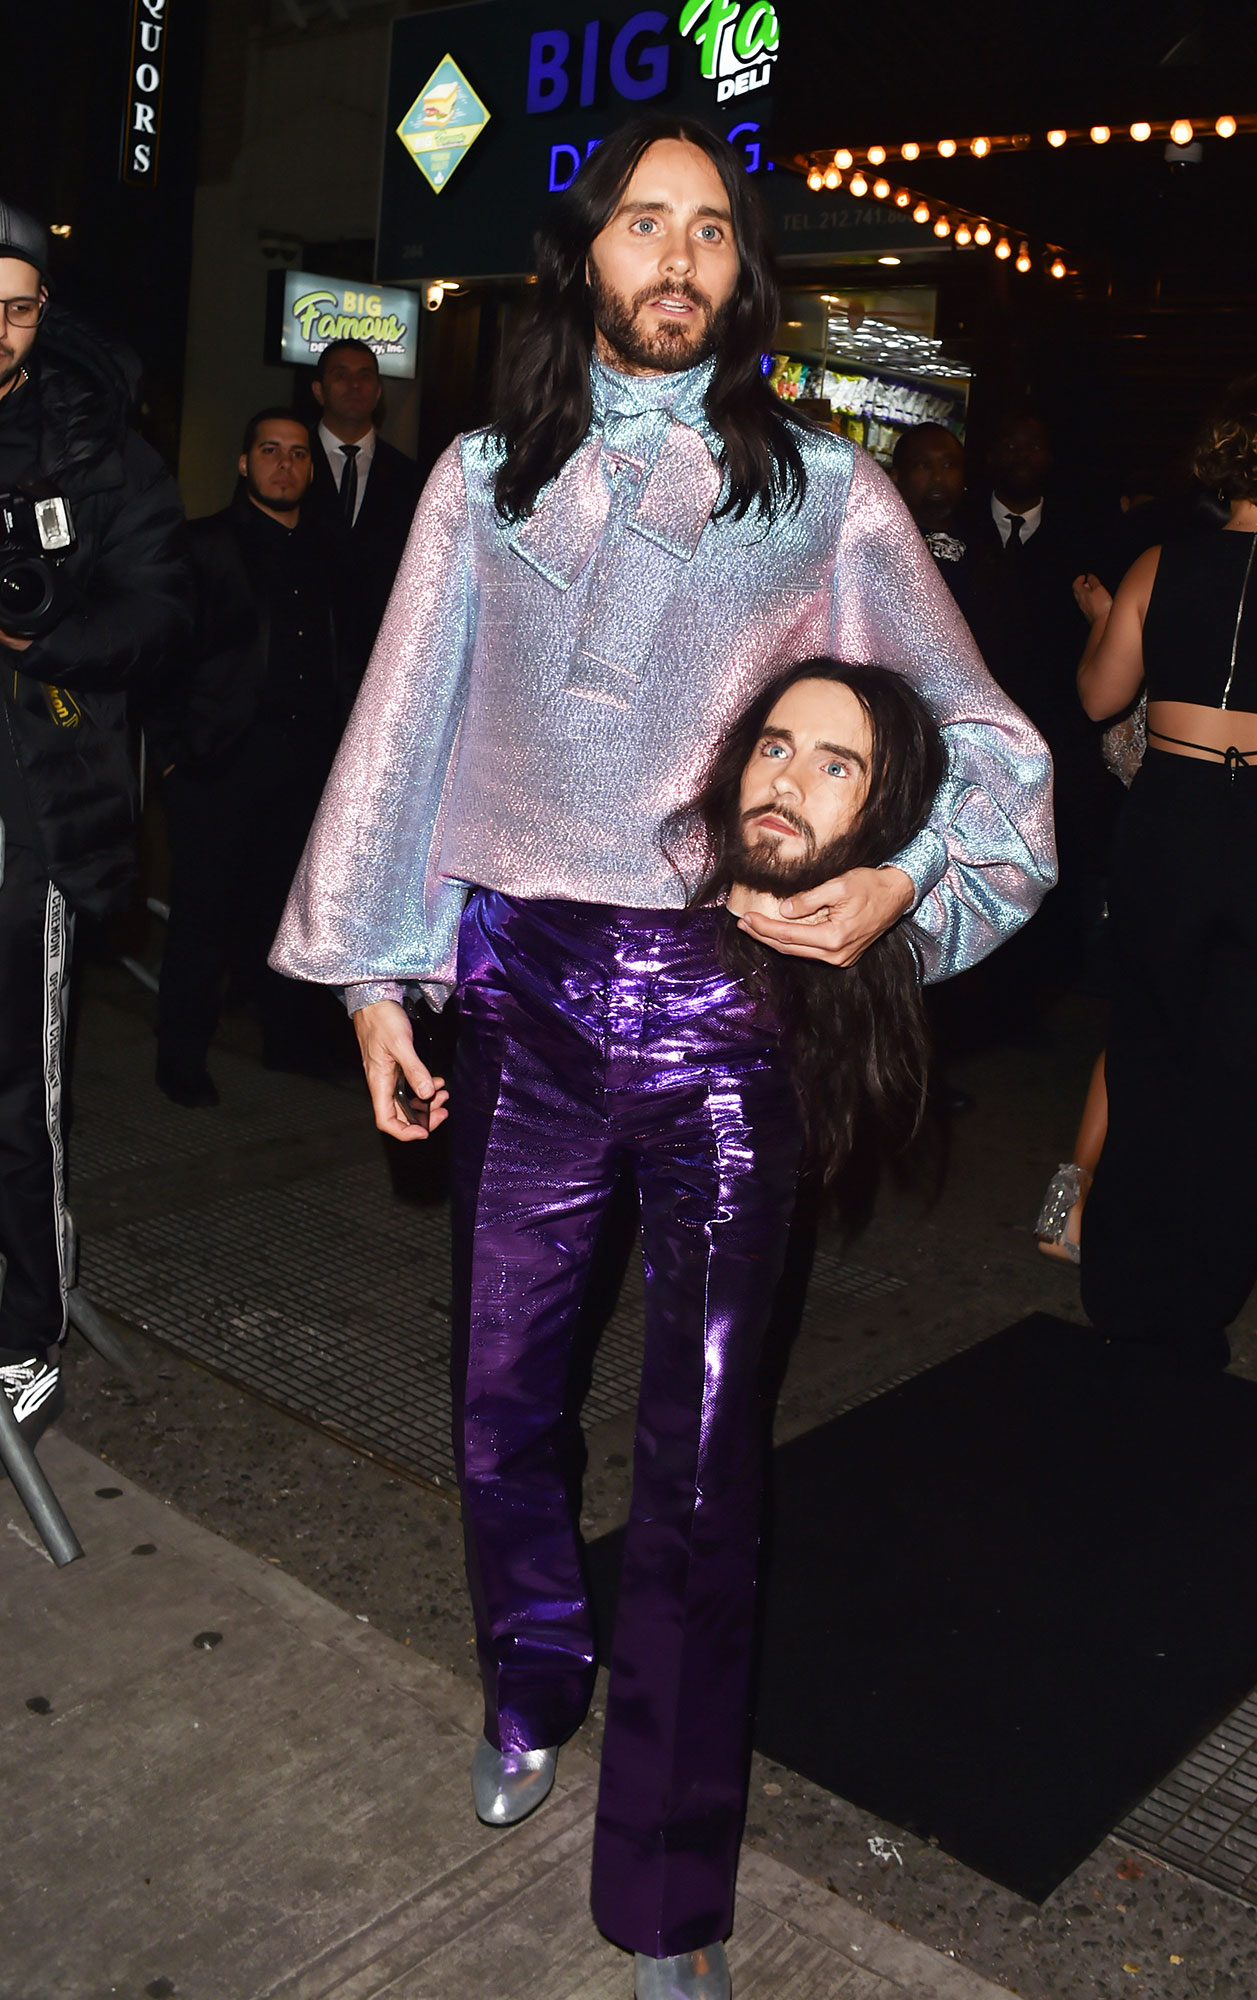 Jared Leto met gala 2019 after party - Still carrying his head as a prop, the Dallas Buyers Club star changed into a purple outfit.